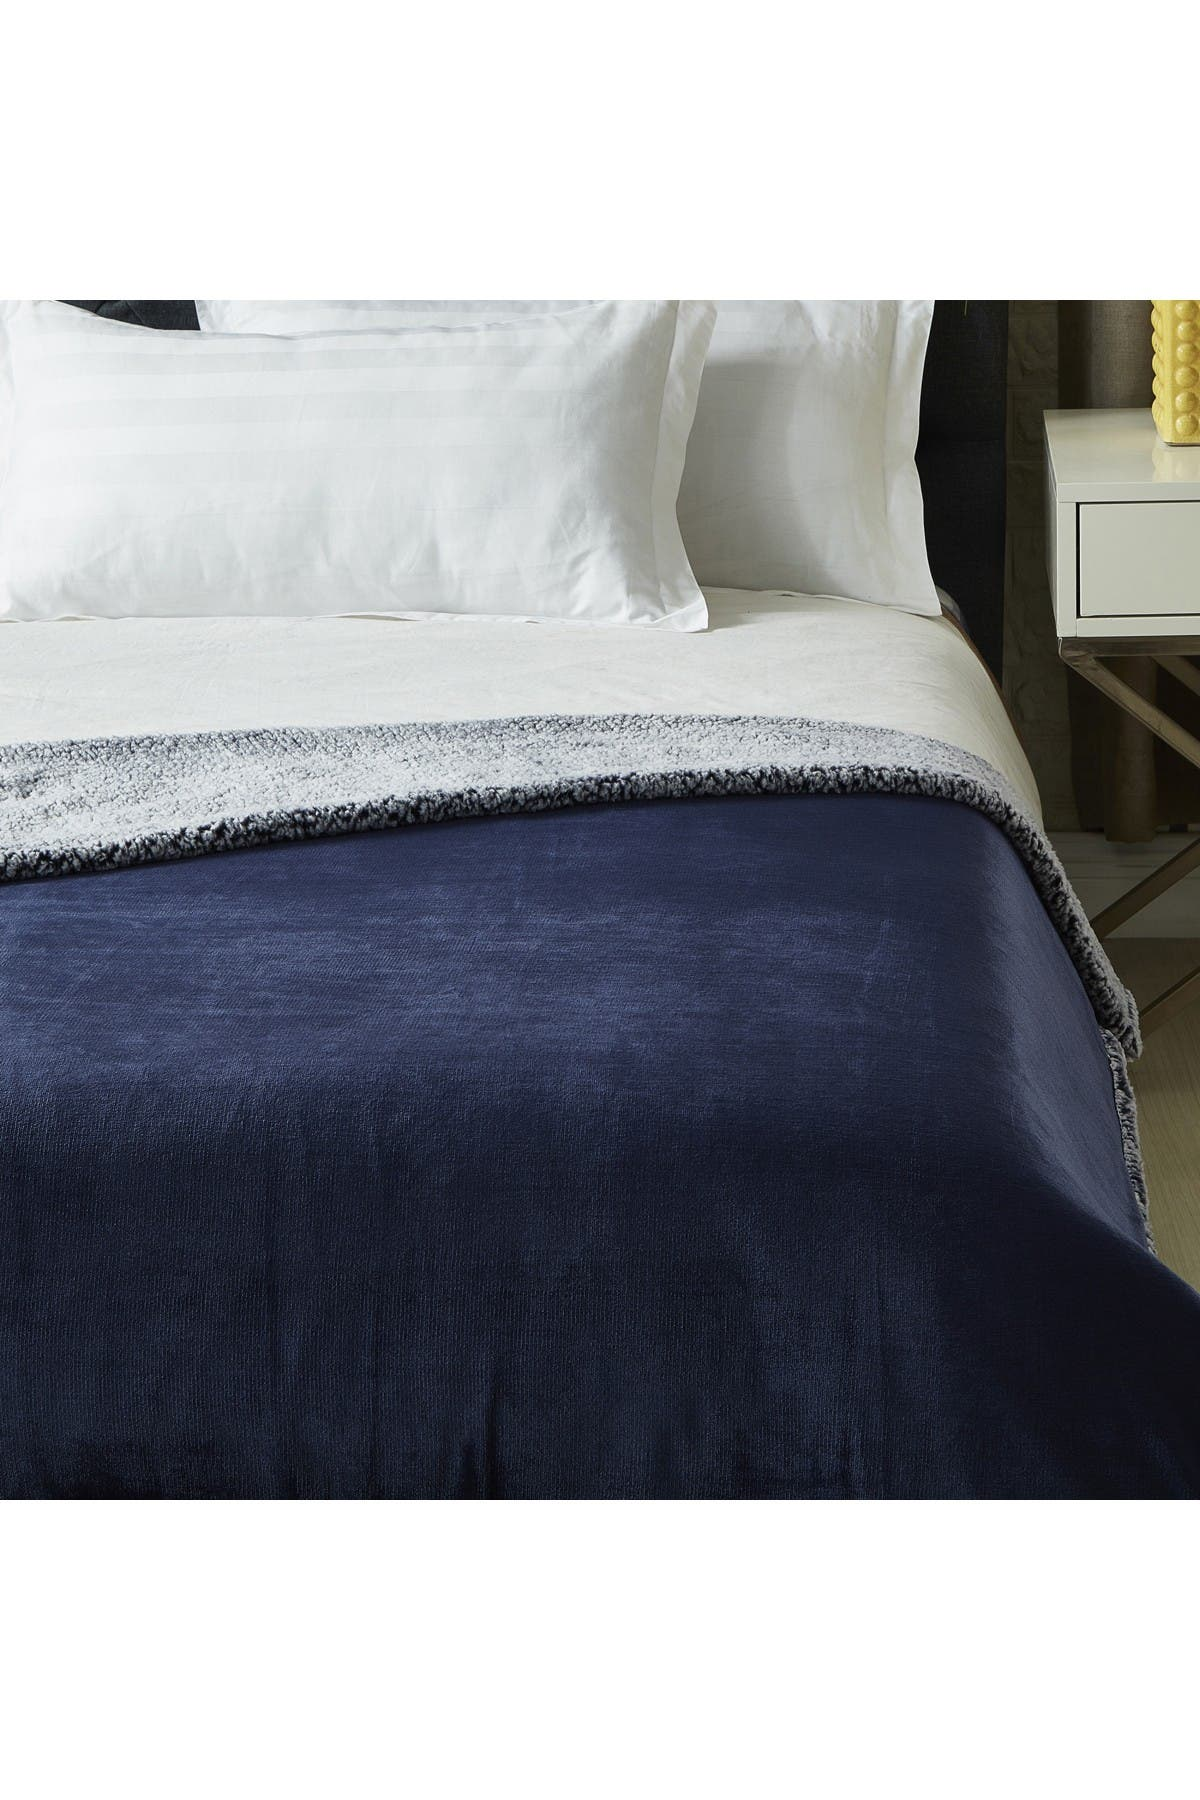 "Image of Inspired Home Cozy Tyme Saleem Flannel Reversible Heathered Faux Shearling Throw 50"" x 60"" - Navy"